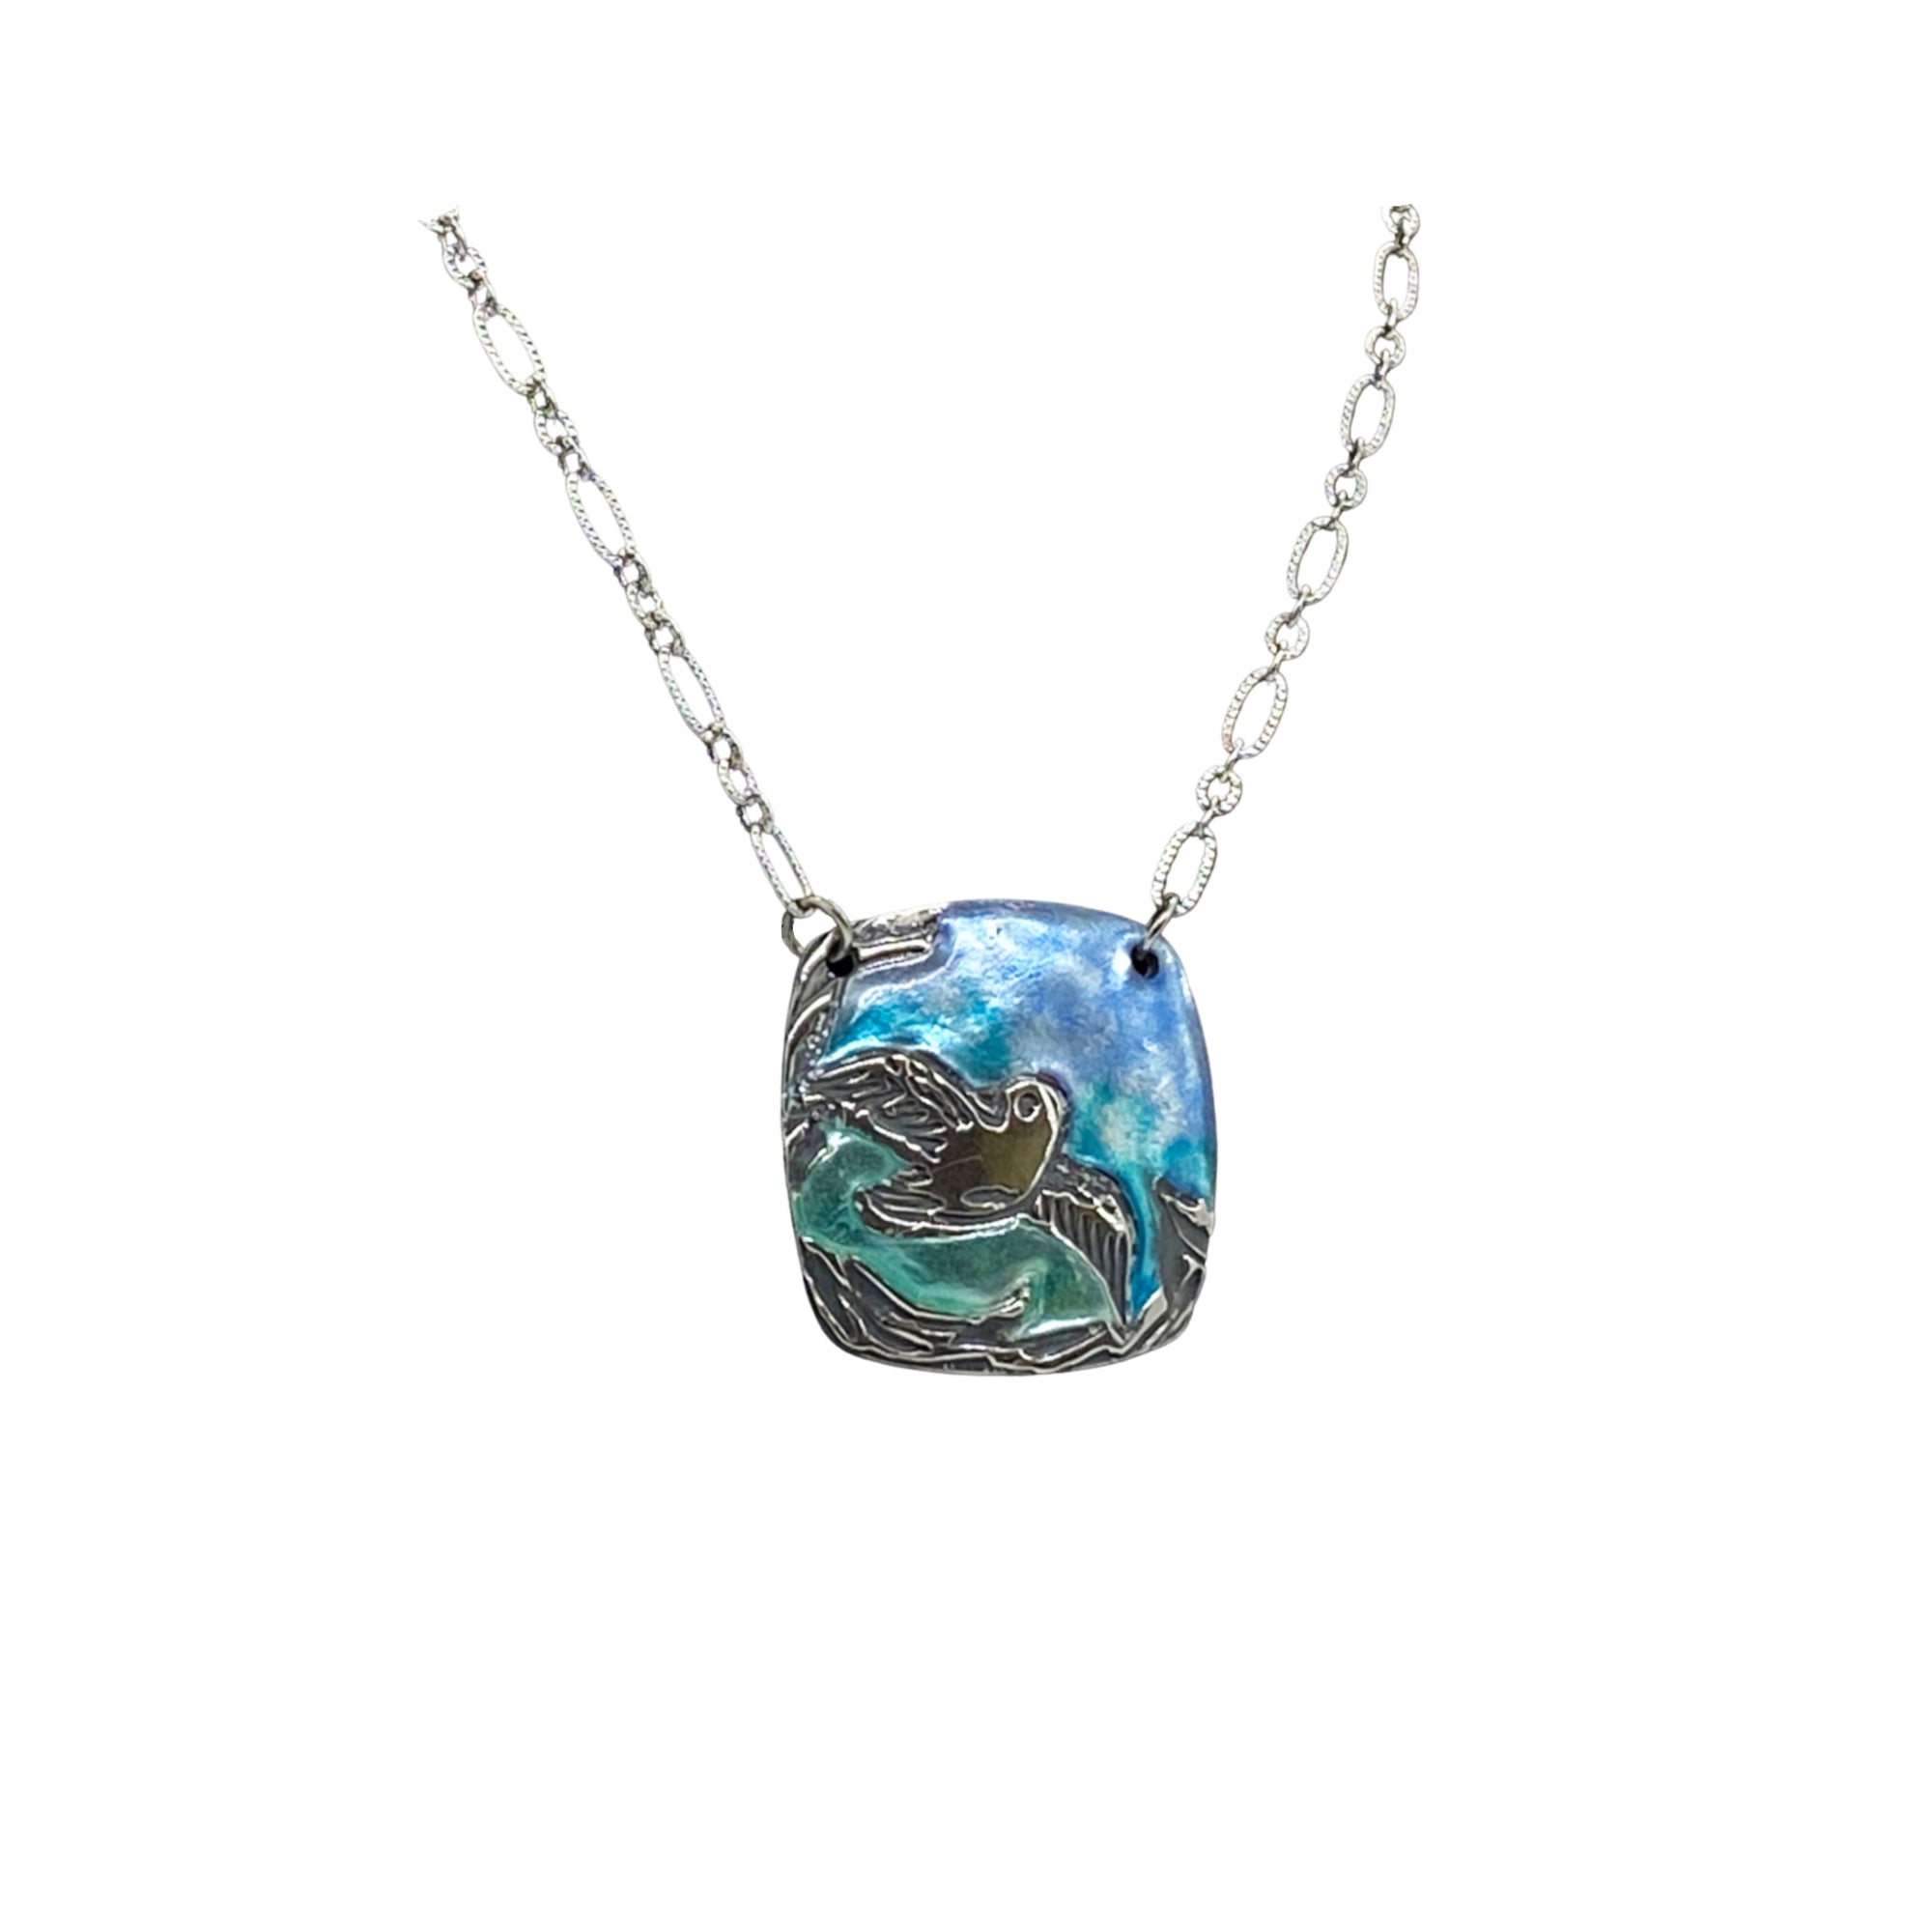 Camille Patton Pearly Bird Cosmos Jewelry Necklace S01